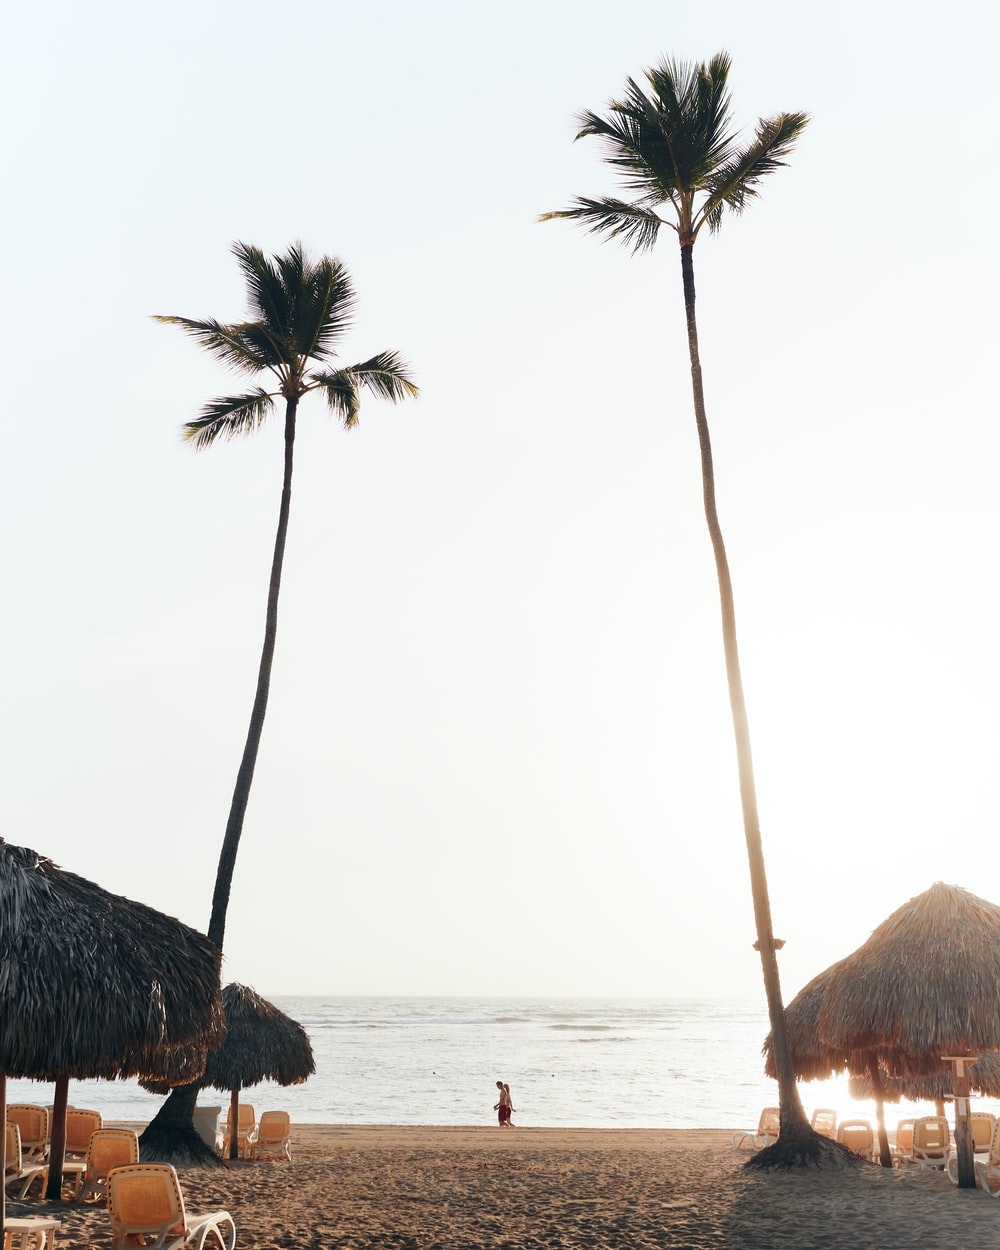 green palm trees on beach shore during daytime